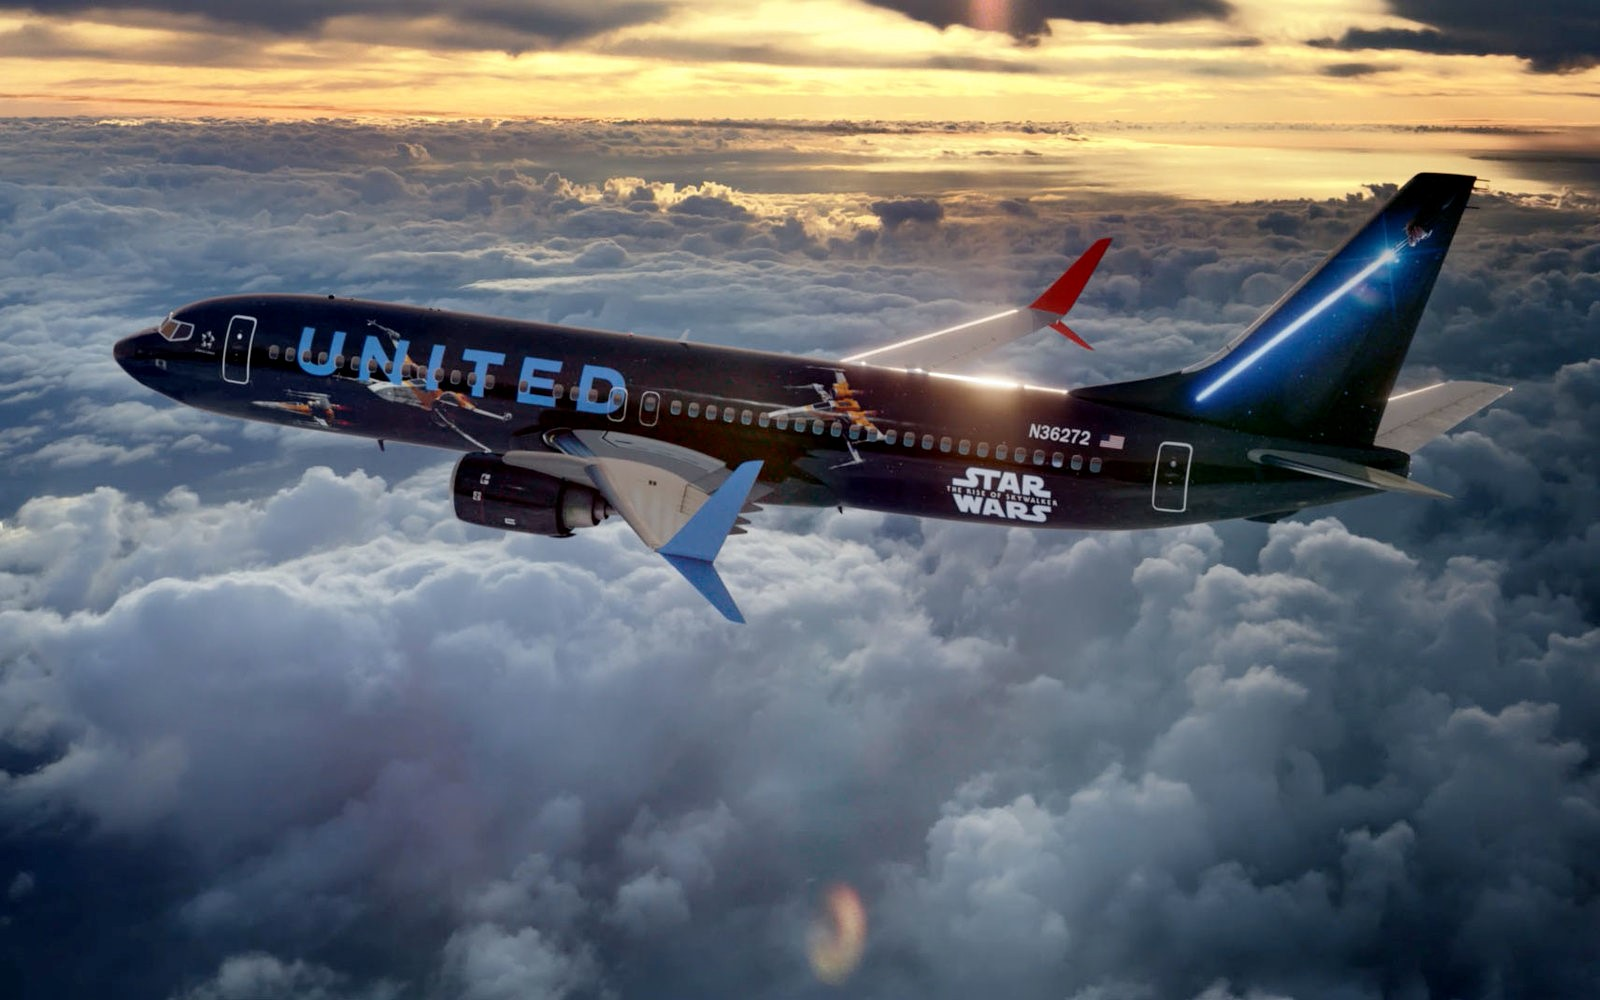 Star Wars Theme Plane United Airlines